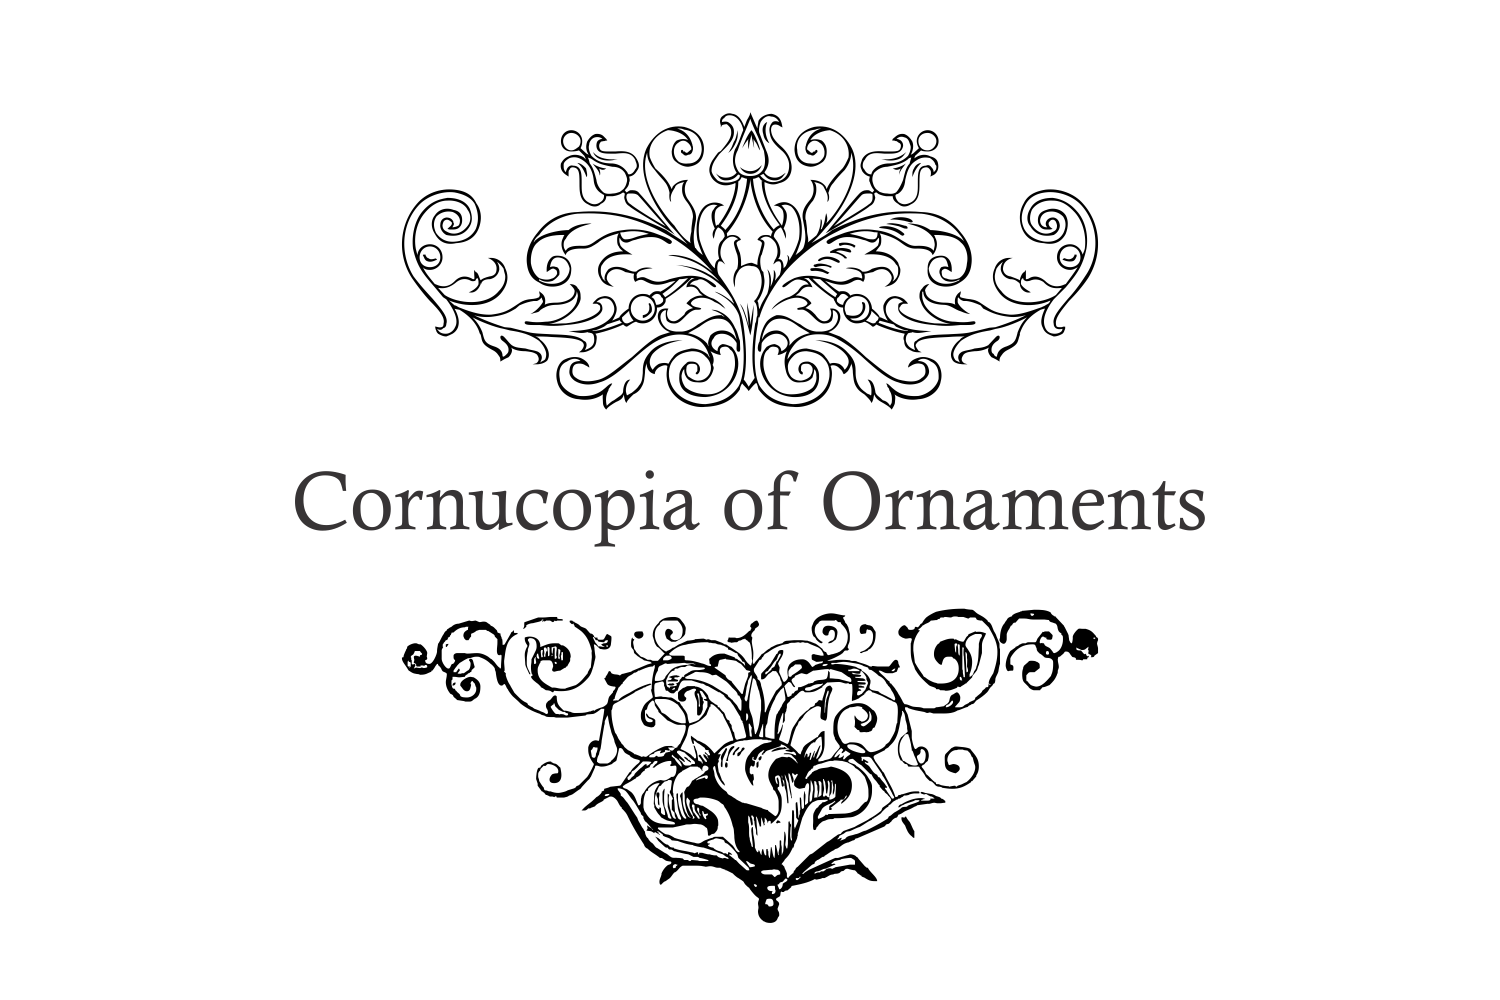 Cornucopia of Ornaments example image 2